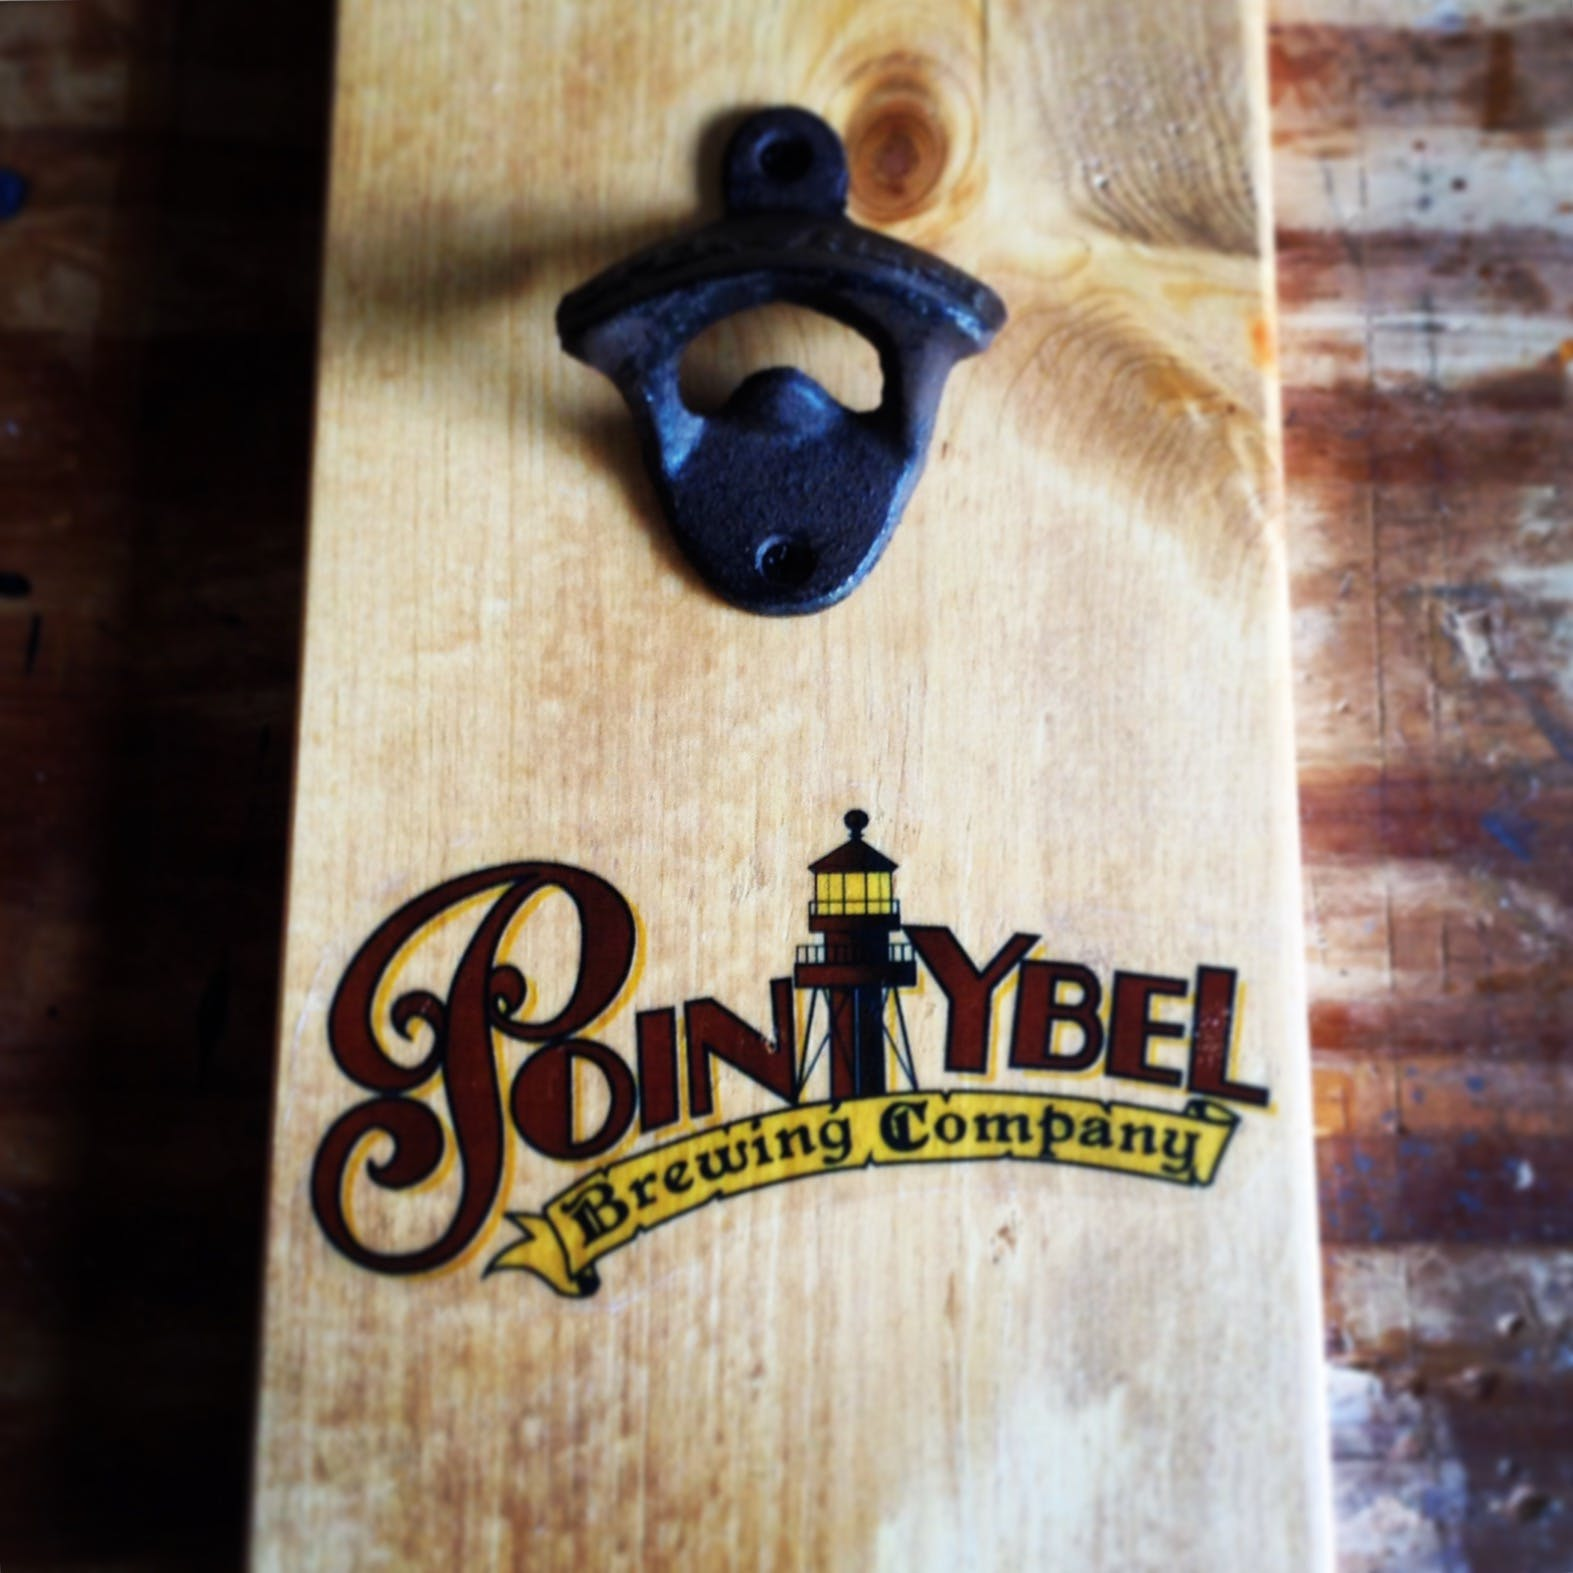 Magnetic Catch Bottle Openers - sold by Palm City Tap Handles